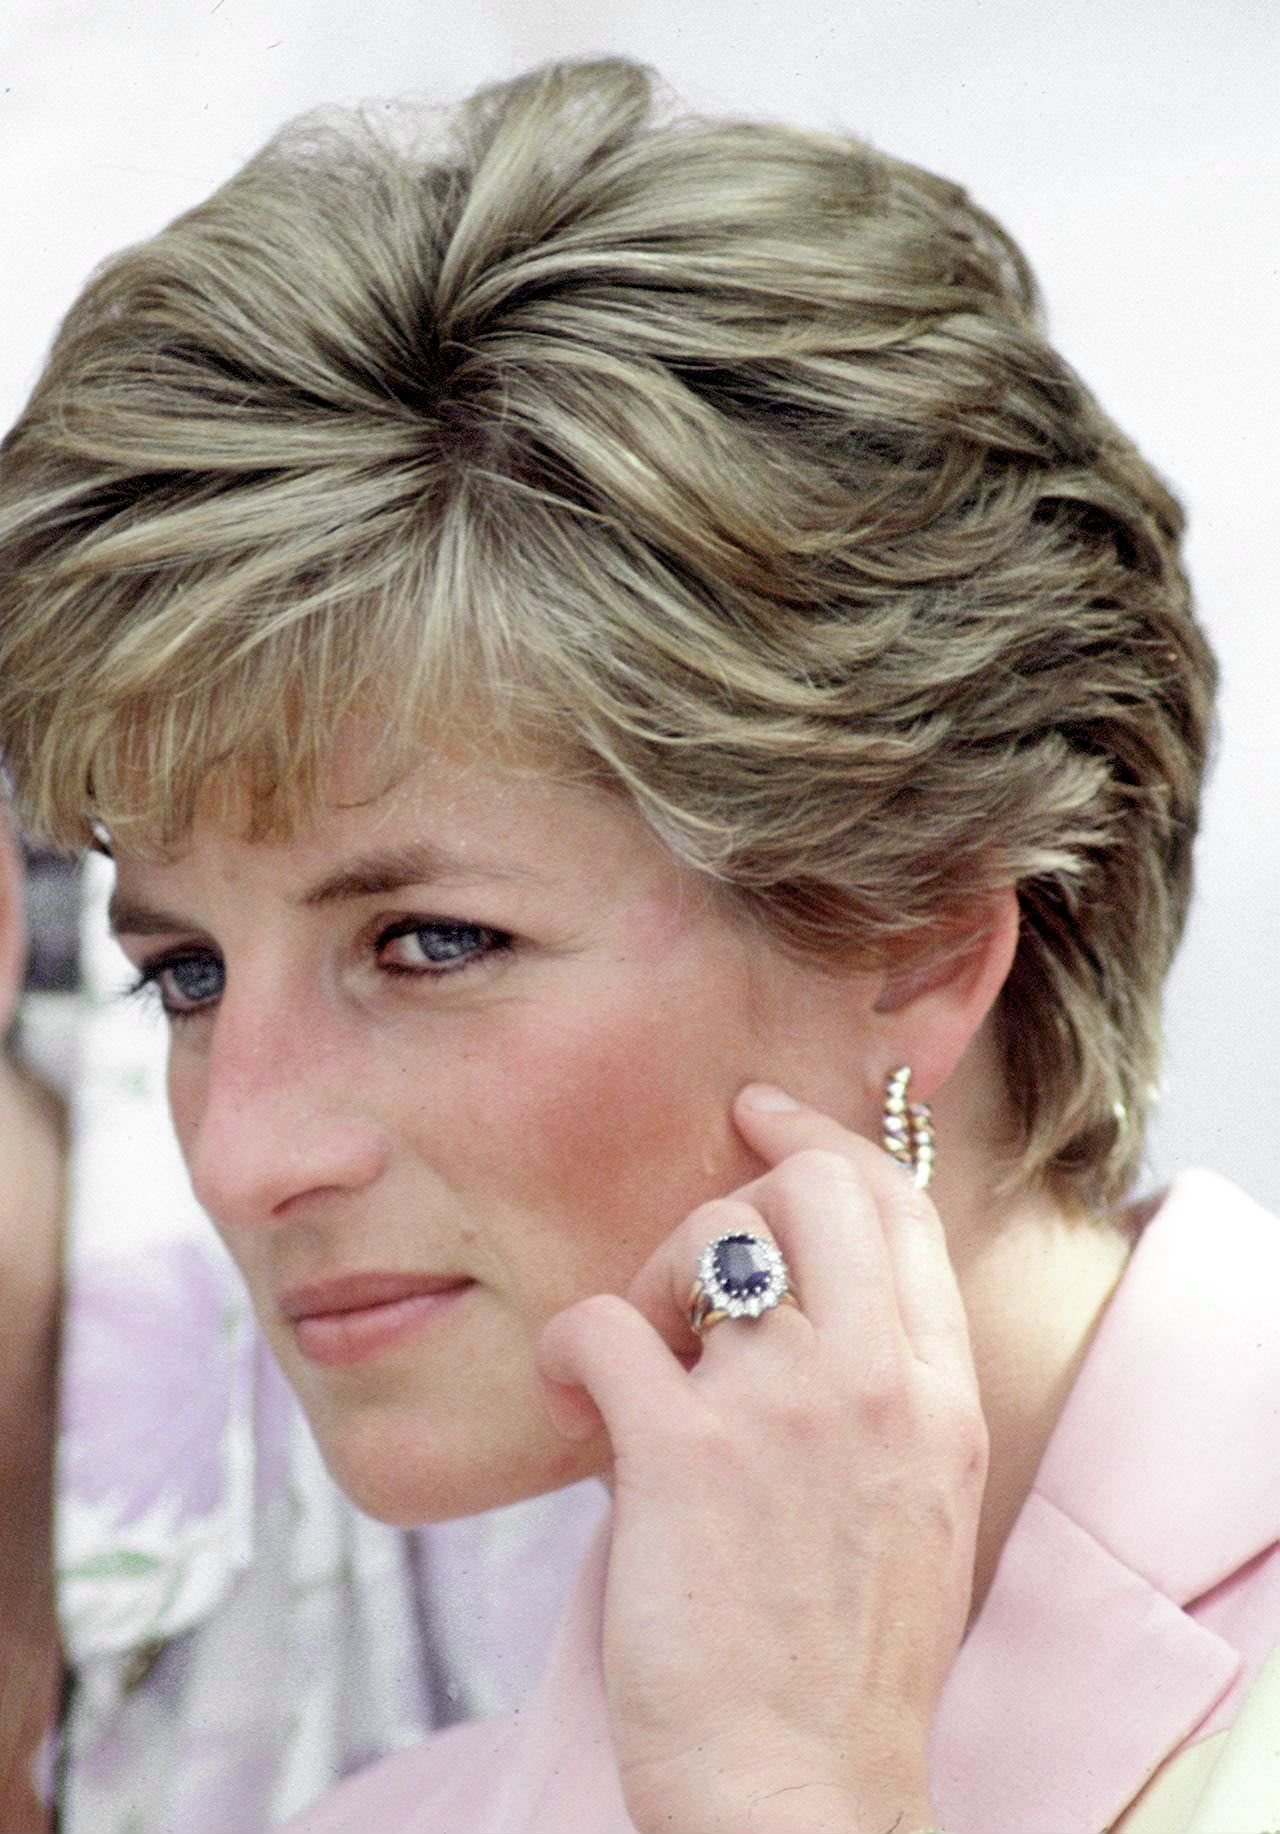 Princess Diana's engagement ring, which now belongs to the Duchess of Cambridge   Source: Getty Images